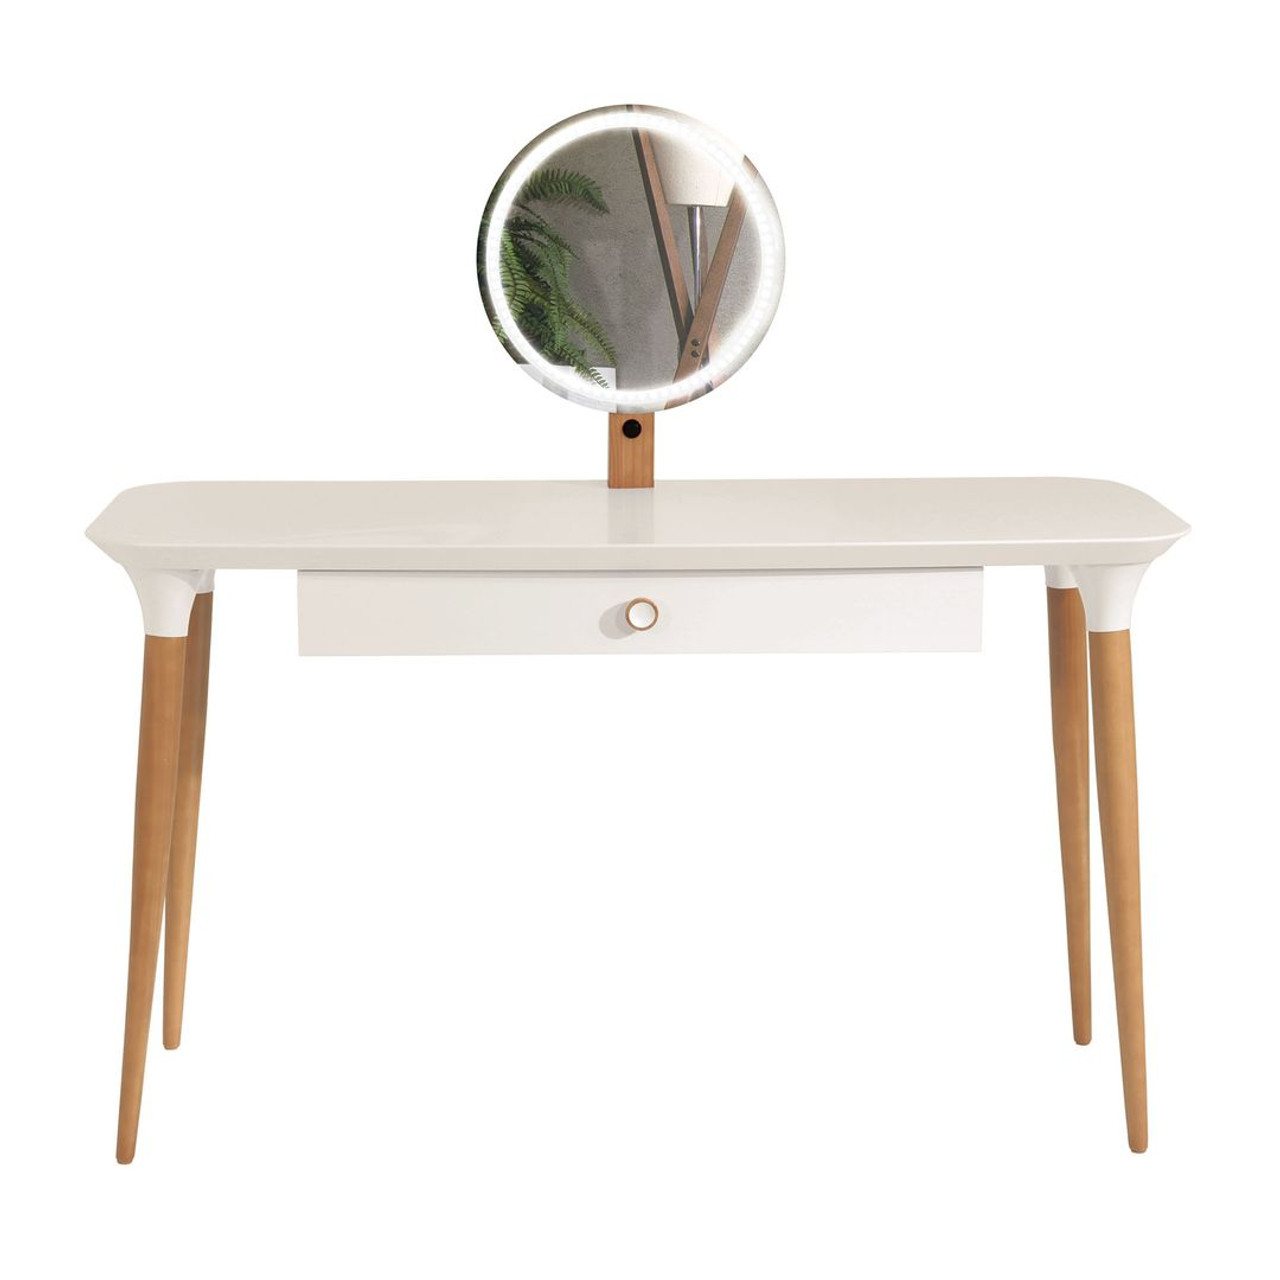 Manhattan Comfort Homedock Vanity Table With Led Light Mirror And Organization In Off White And Cinnamon Furniture East Inc